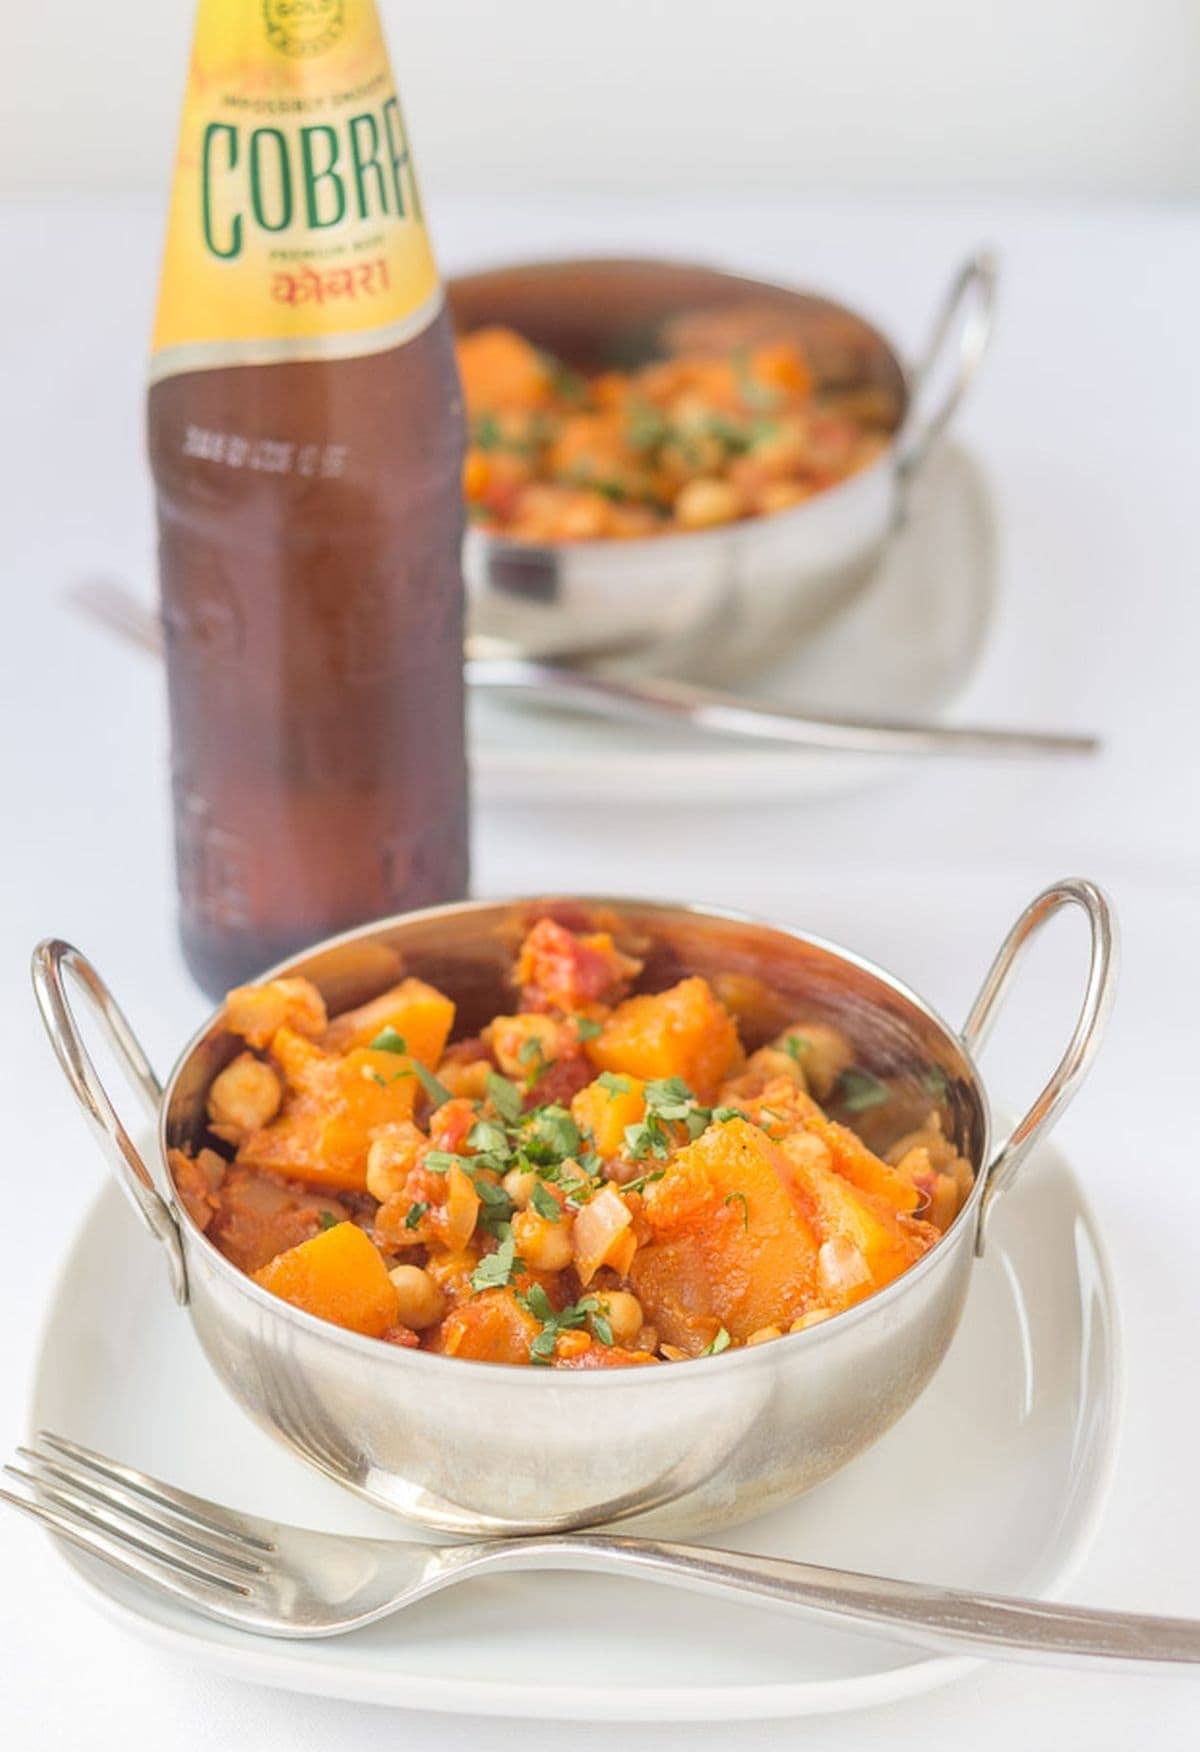 Two balti dishes with chickpea and butternut squash curry in, sitting on plates with a fork to the side. A bottle of lager in between.